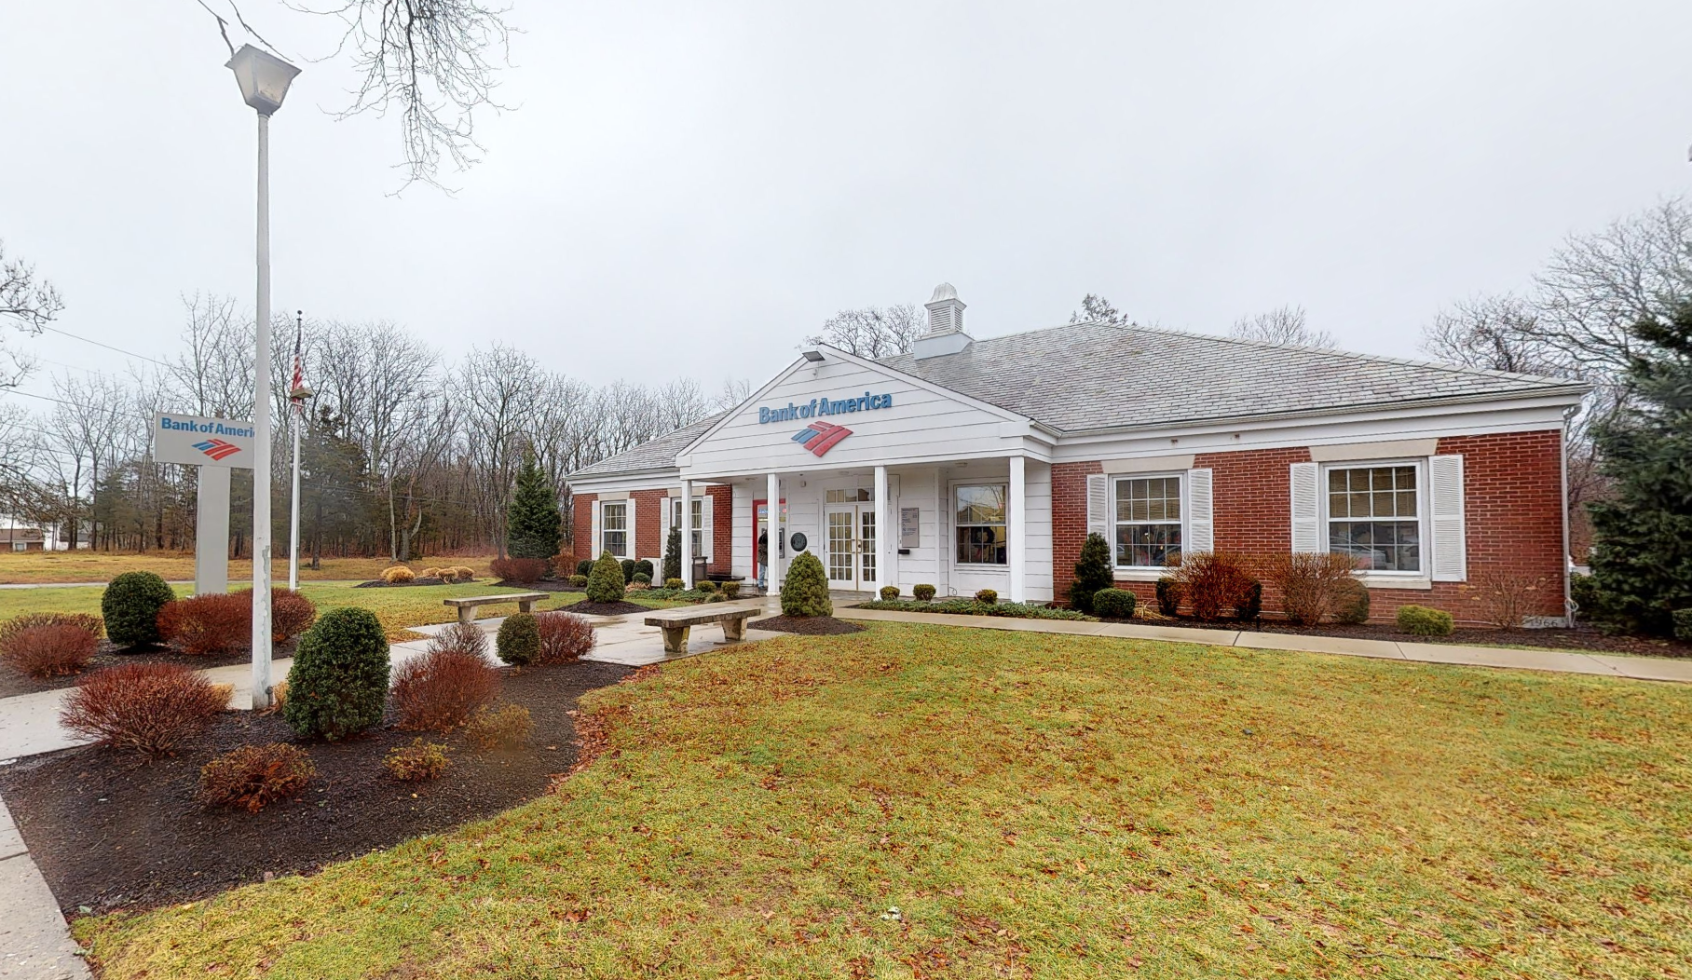 Bank of America financial center with walk-up ATM | 53300 Main Rd, Southold, NY 11971